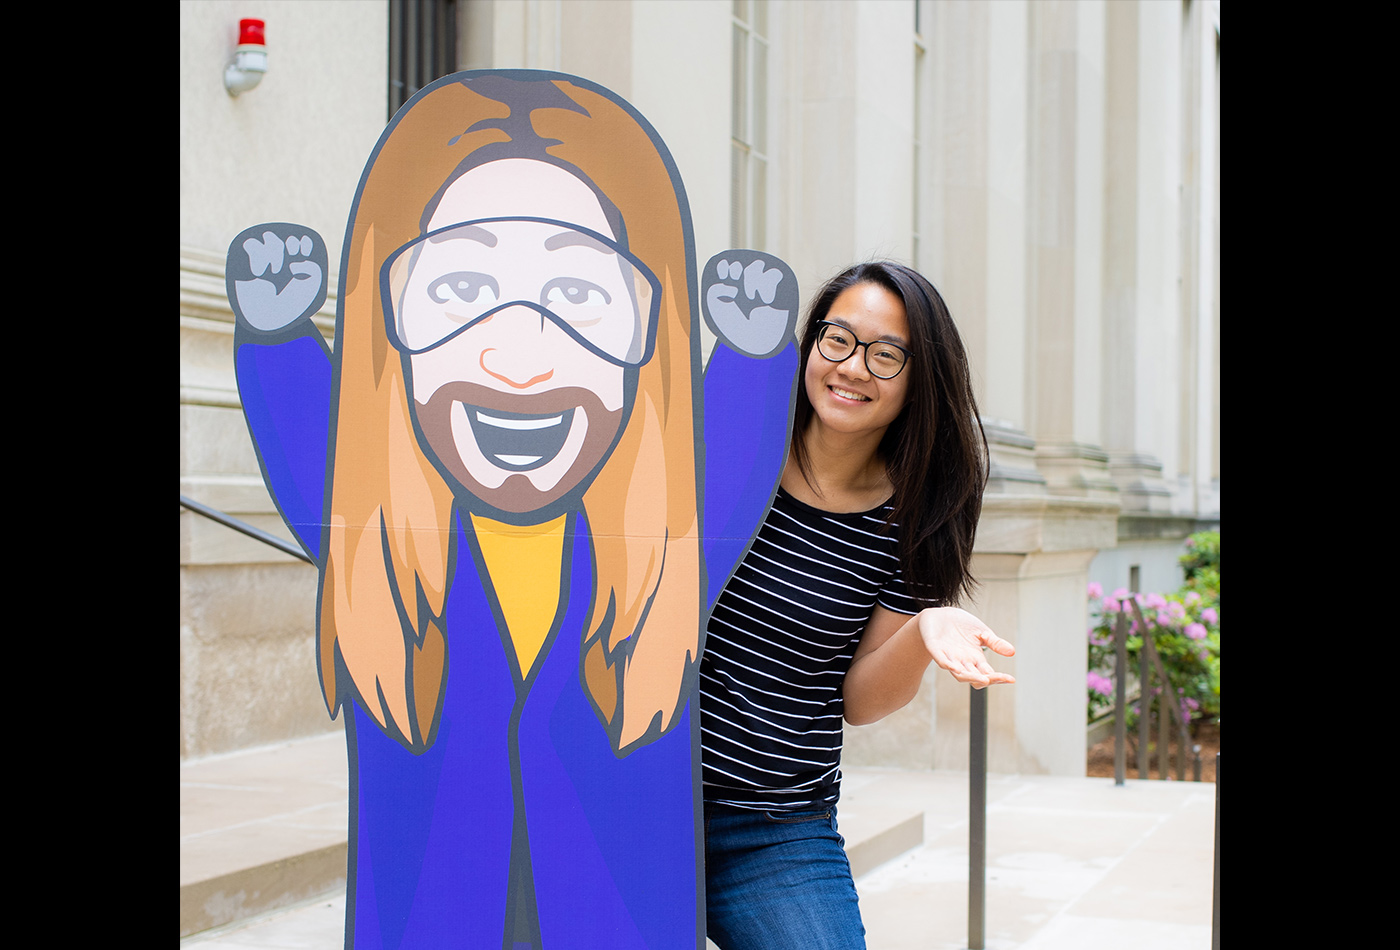 A female graduate student poses with a large cartoon cardboard cutout of a researcher.